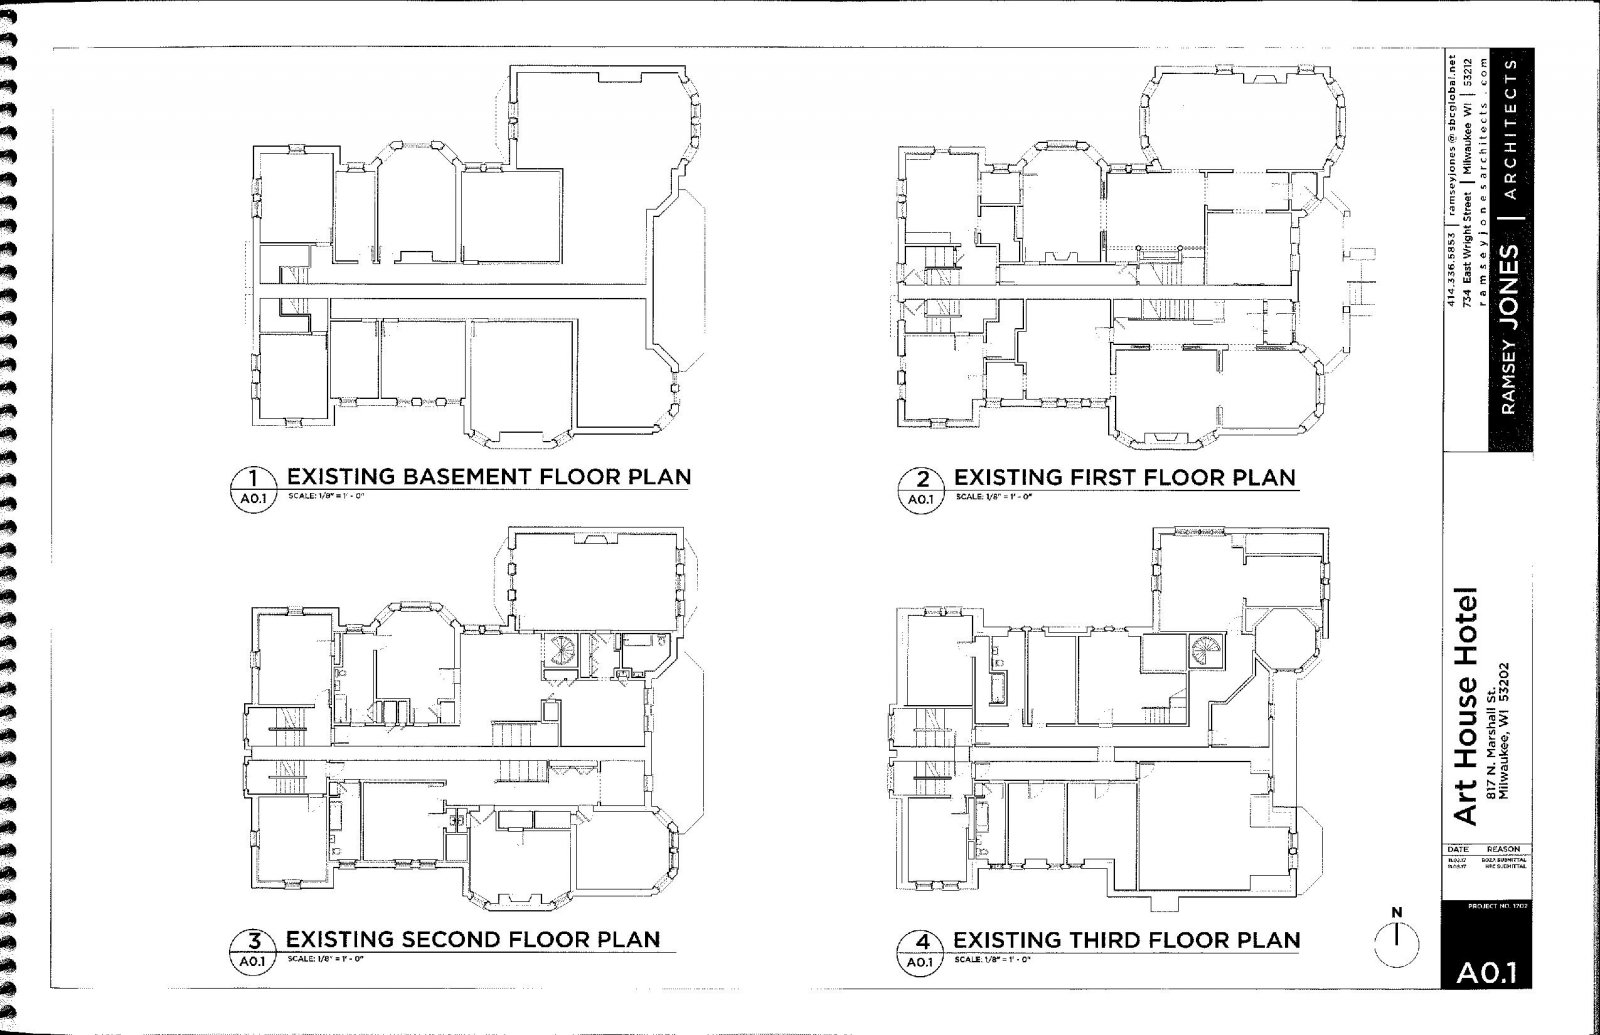 Eyes on Milwaukee: Commission Approves Boutique Hotel ... Ramsey House Floor Plan on dayton floor plan, beach haven floor plan, milford floor plan, ridgewood floor plan, westwood floor plan, somerset floor plan, benson floor plan, garfield floor plan, somerville floor plan, richland floor plan, montague floor plan, millstone floor plan, barrington floor plan, lexington floor plan, benton floor plan, norwood floor plan, roosevelt floor plan, clayton floor plan, woodbridge floor plan, chatham floor plan,